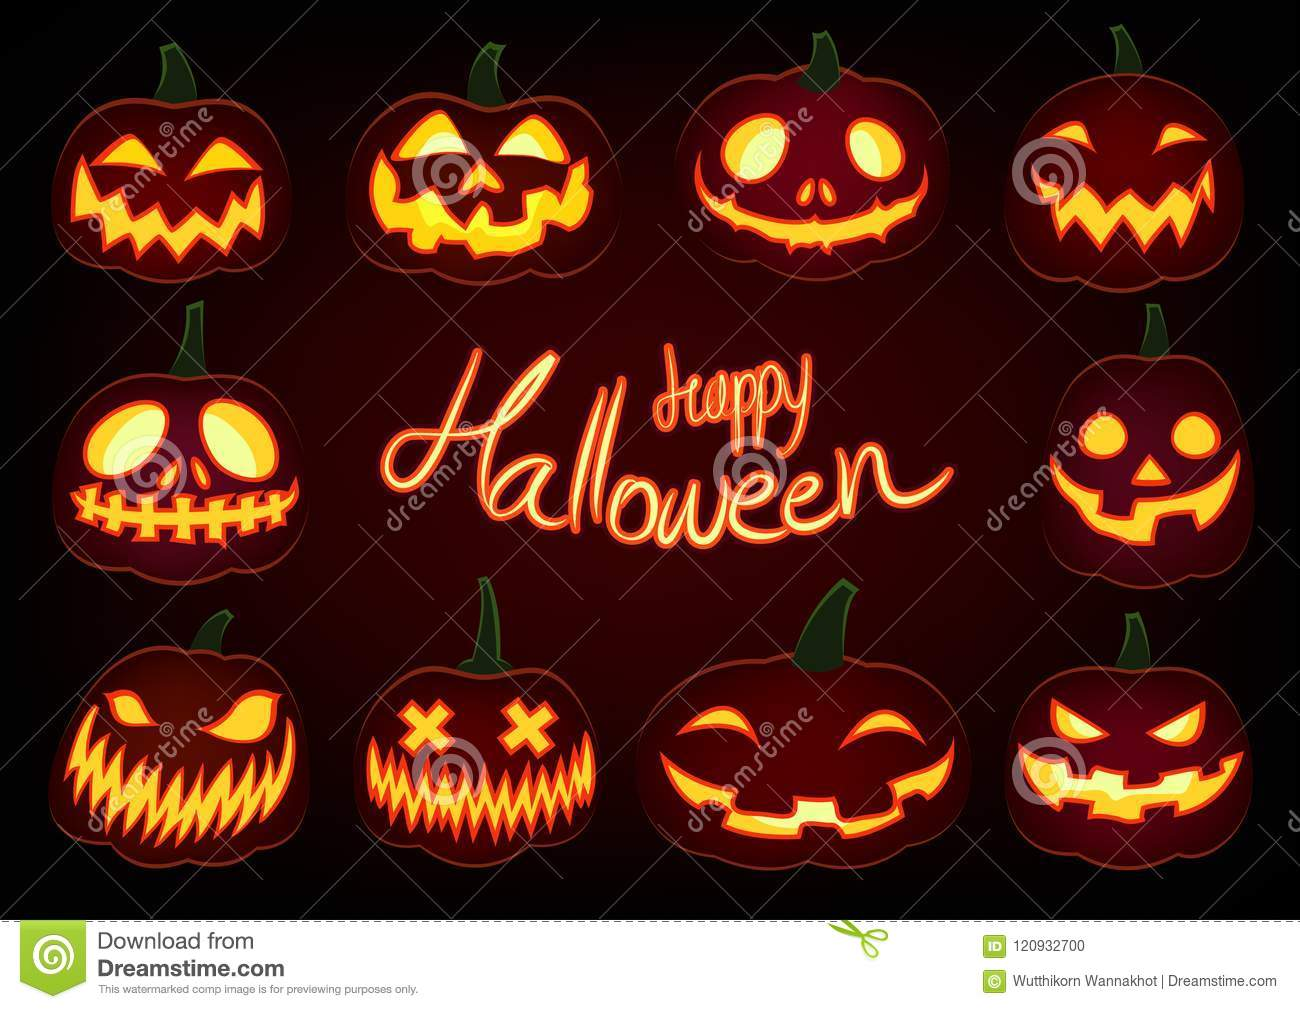 happy halloween pumpkin glow jack o lantern set dark background happy halloween pumpkin lantern glow jack o lantern set dark